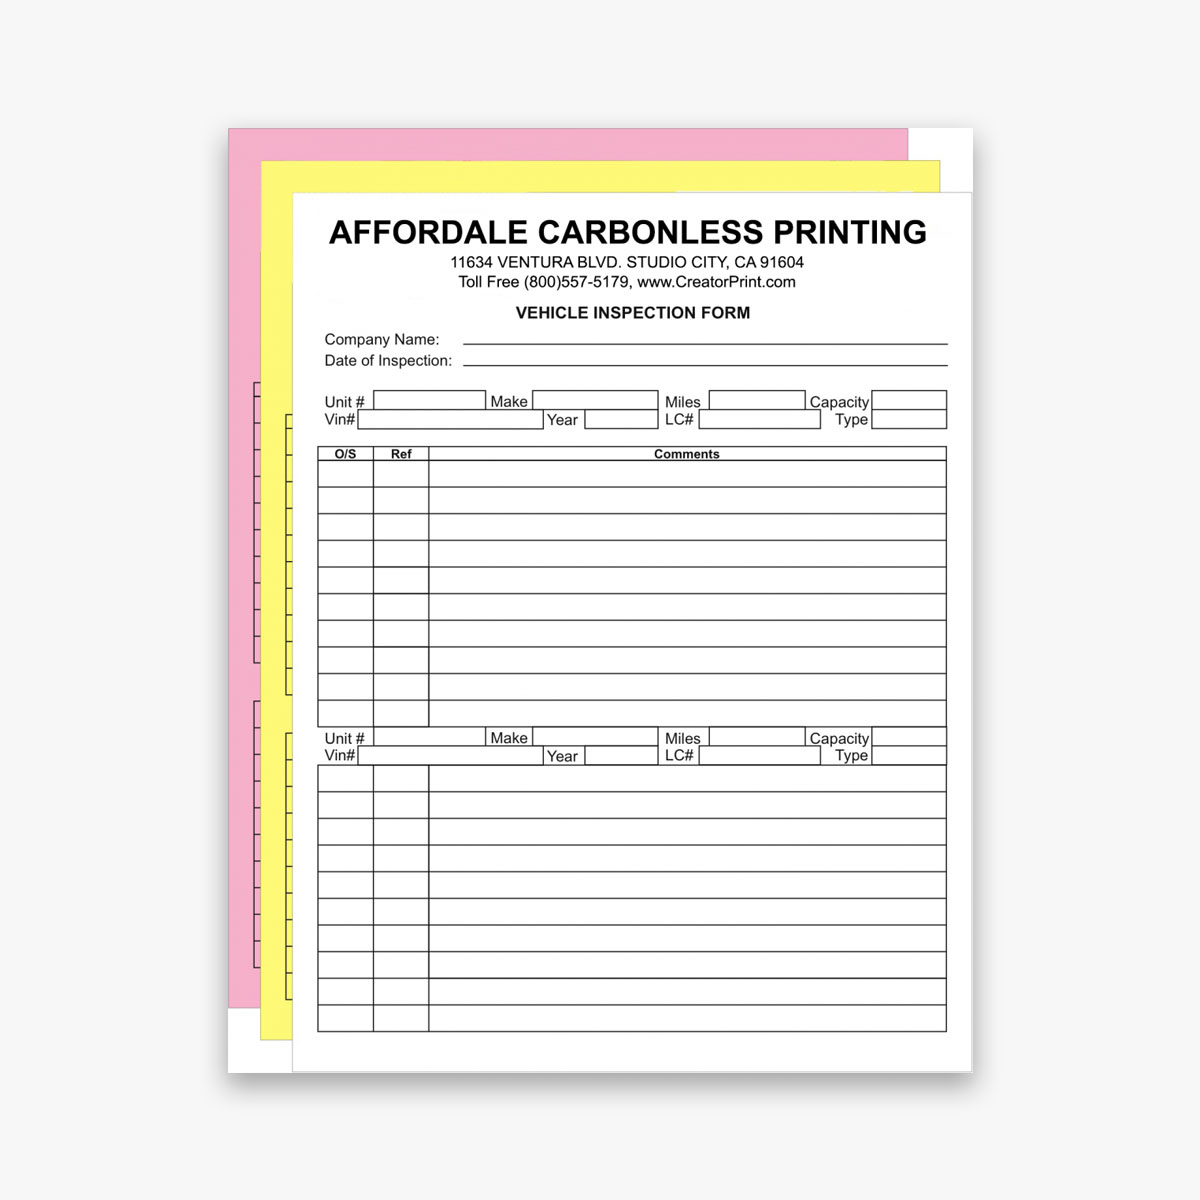 Wholesale Carbonless Forms